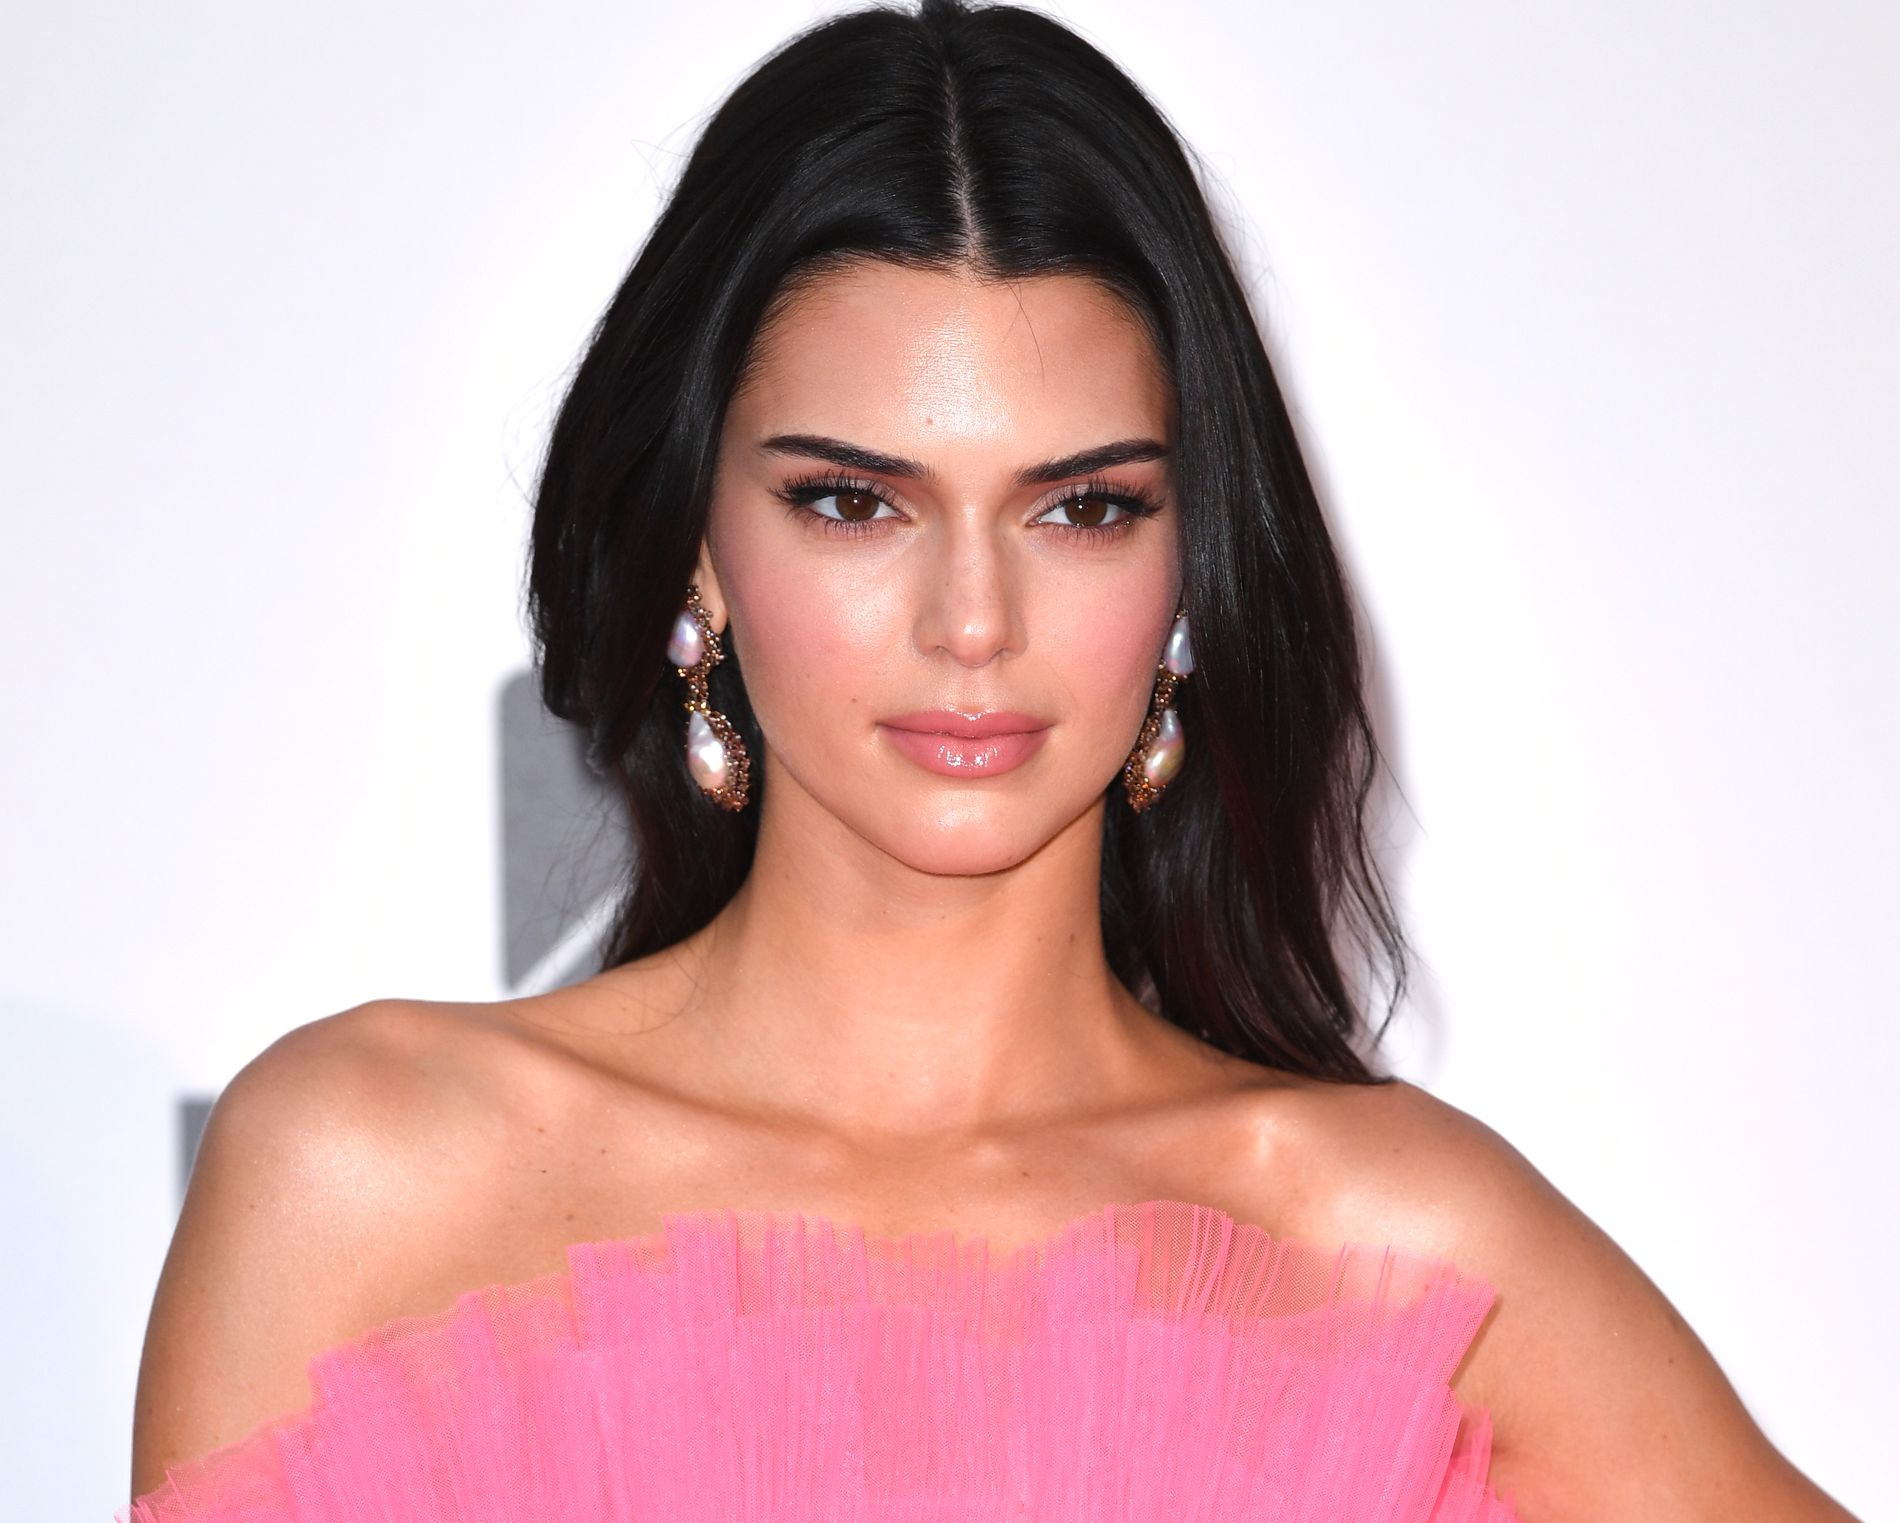 Kendall Jenner moved in – VG